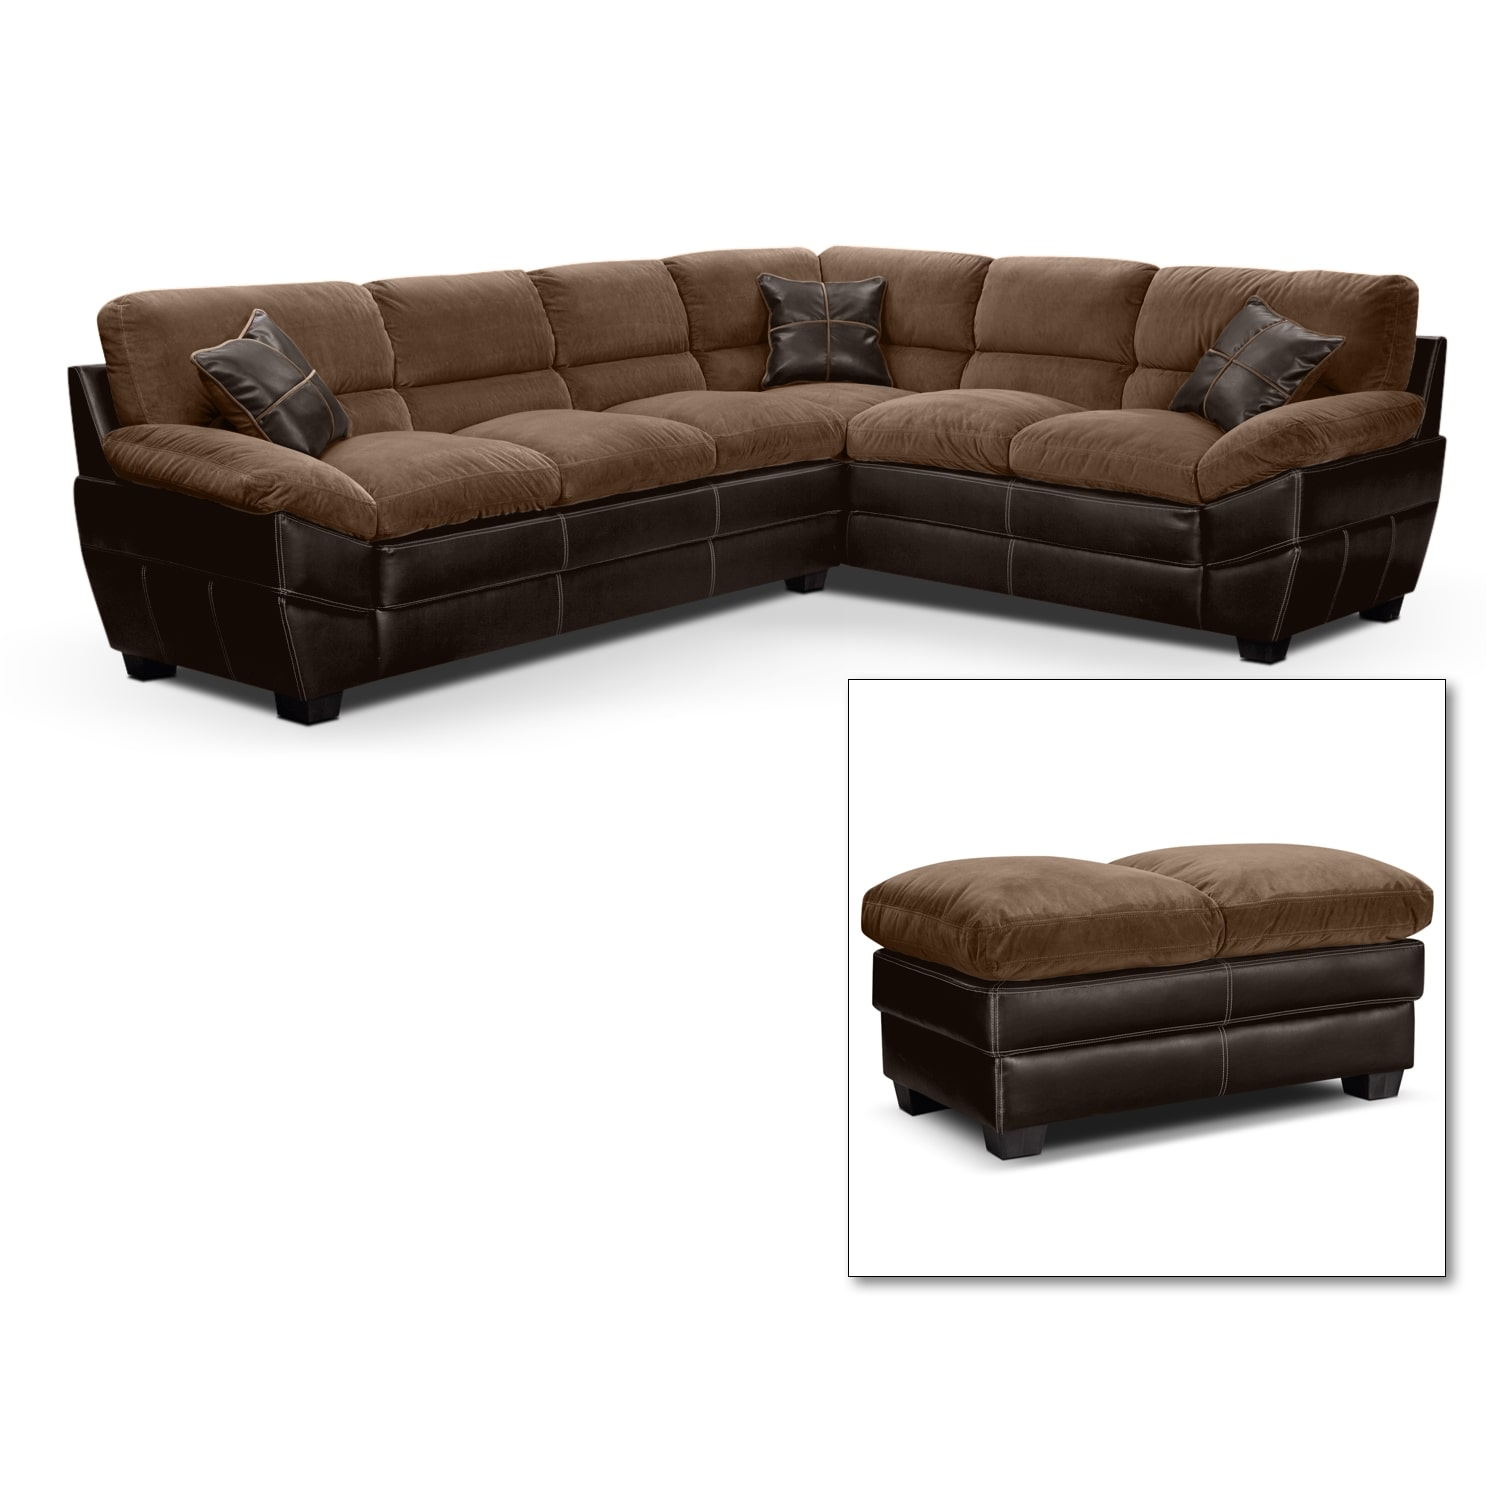 Chandler Beige II 2 Pc. Sectional and Cocktail Ottoman